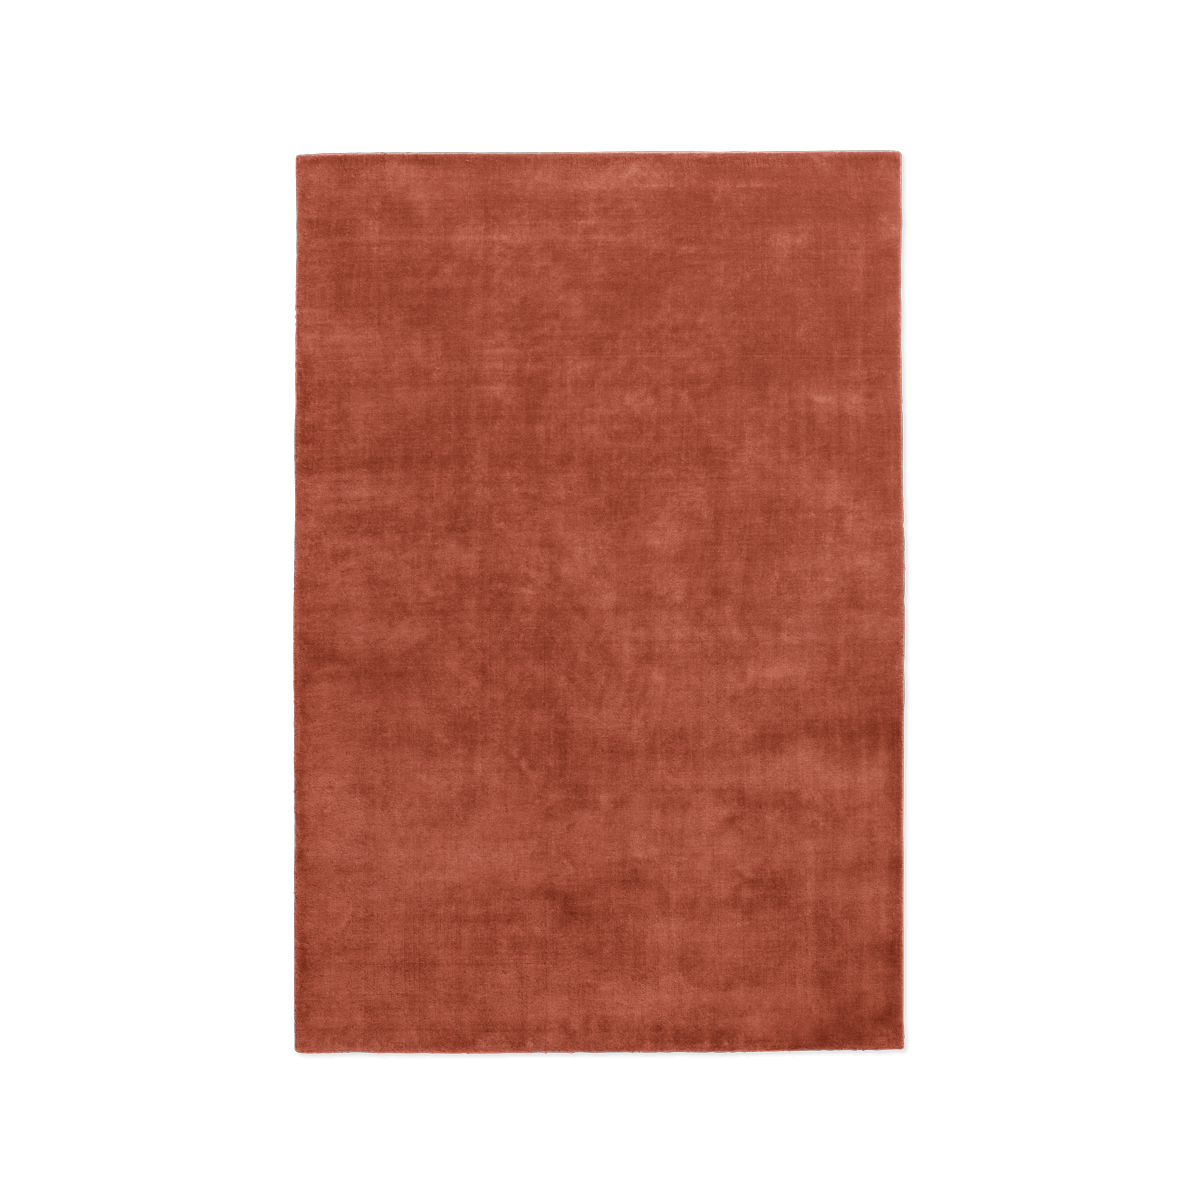 Product image of the plush rug Grand in the color Brick Red.